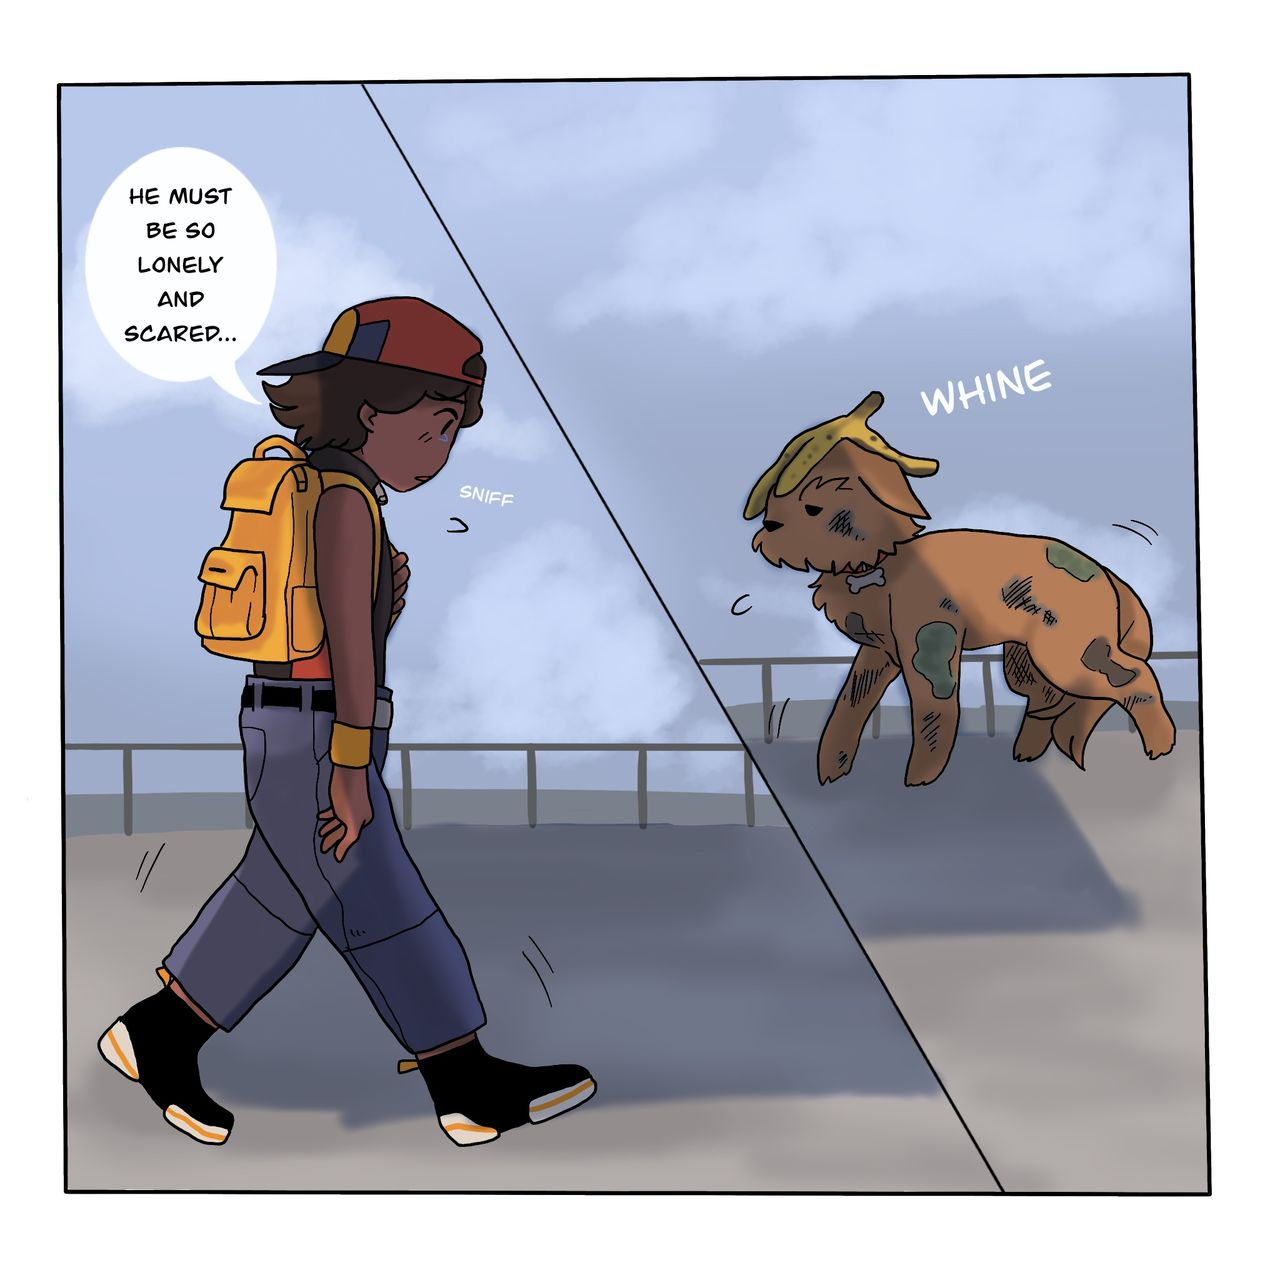 This webcomic show the main character forlorn and saying their dog must be so lonely and scared. On the opposite side of the panel Chumpie is walking towards them, whining.